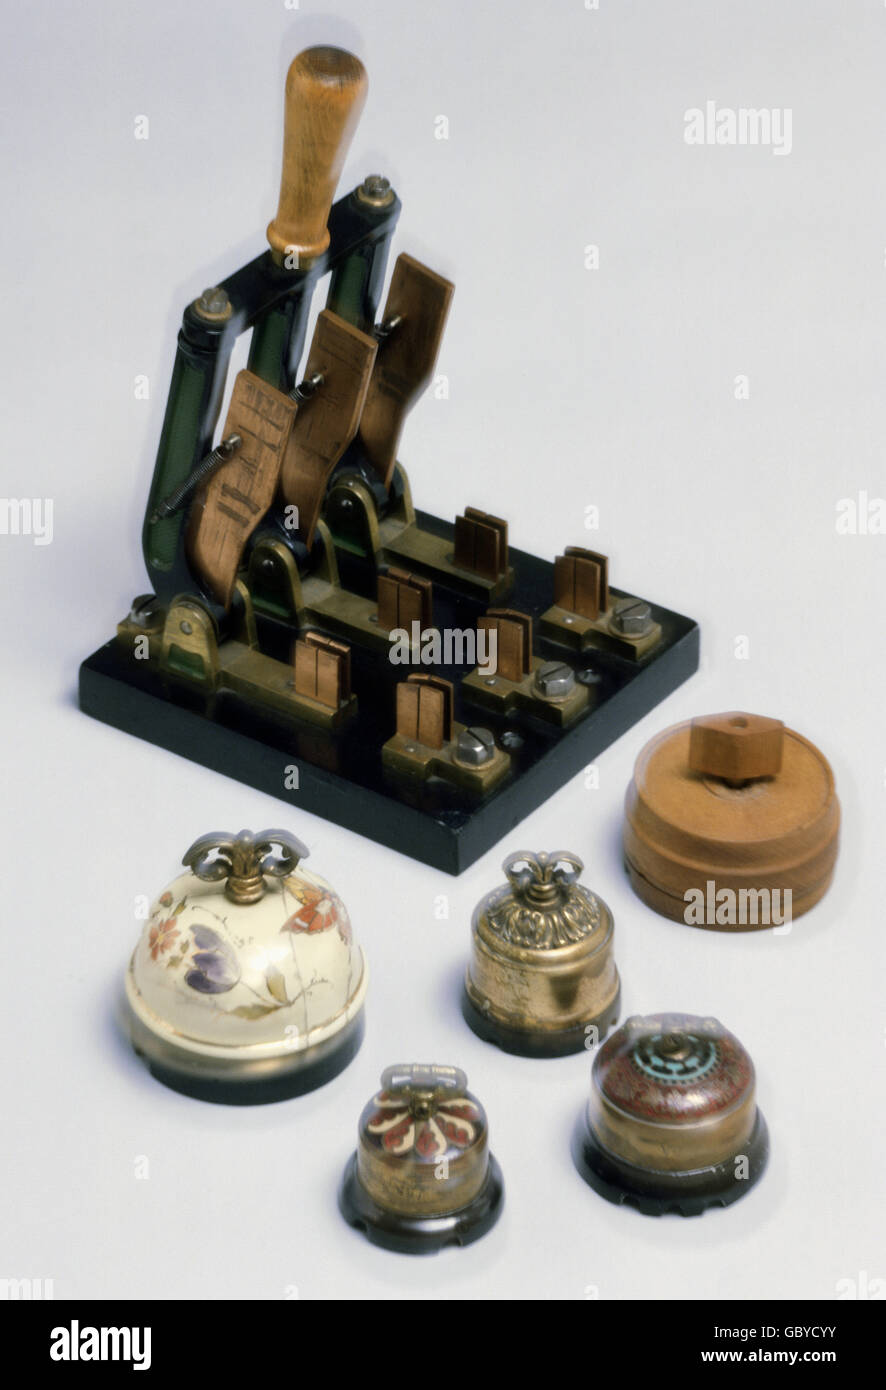 Energy Electricity Industrial Household Switches Stock Photos ...